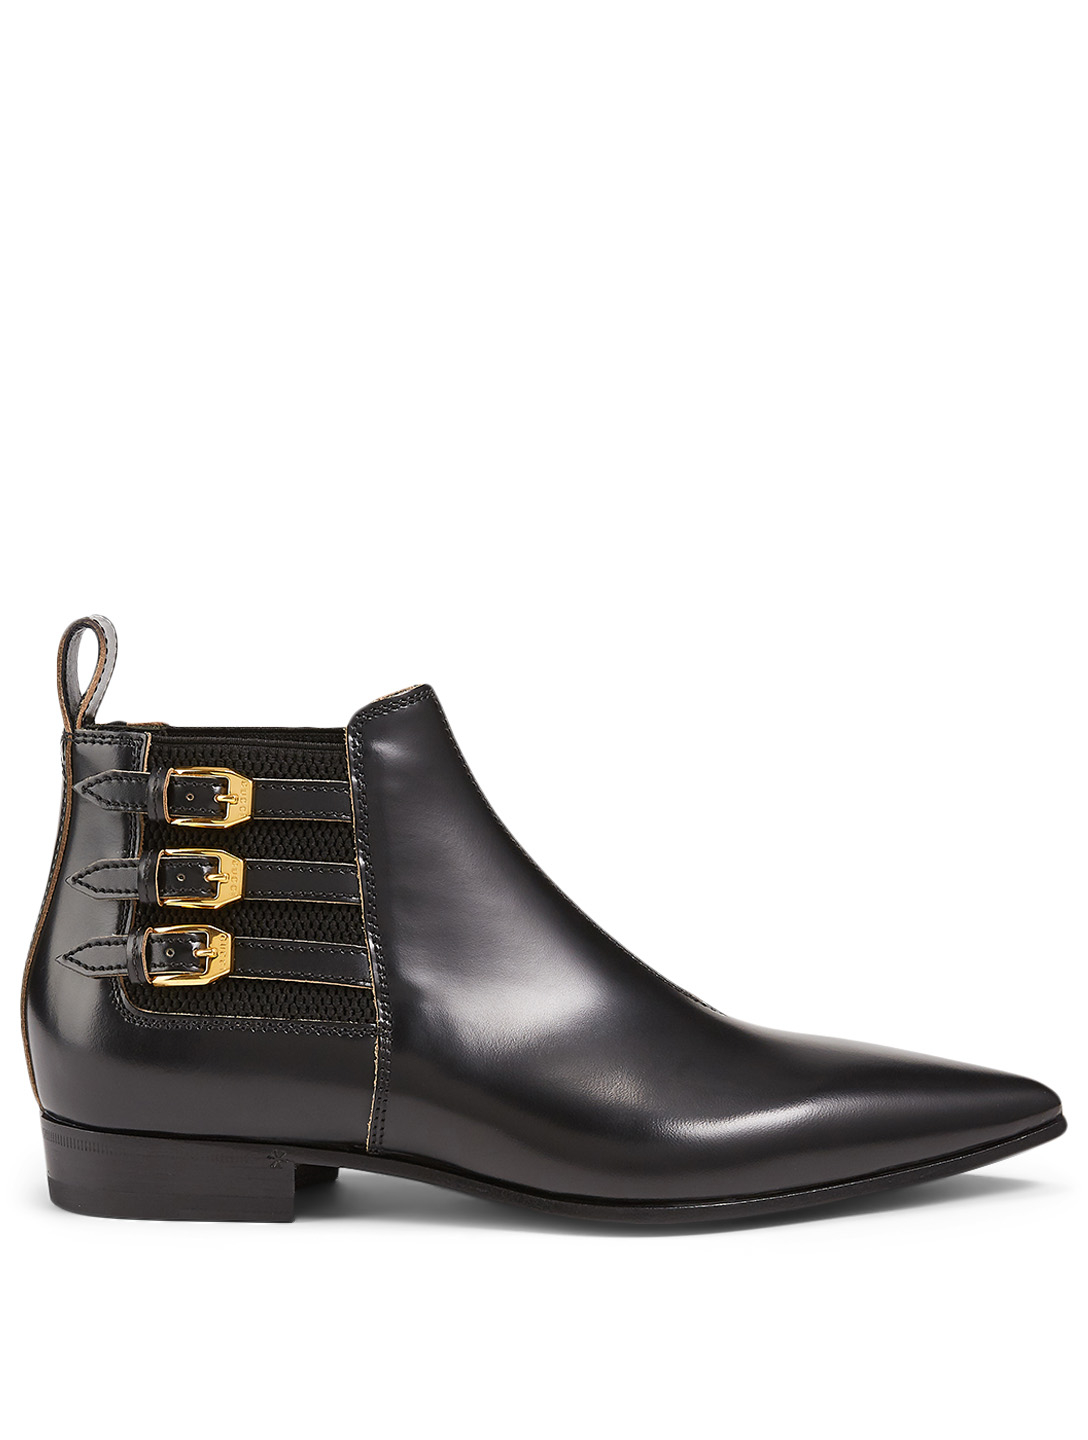 GUCCI Leather Ankle Boots Women's Black